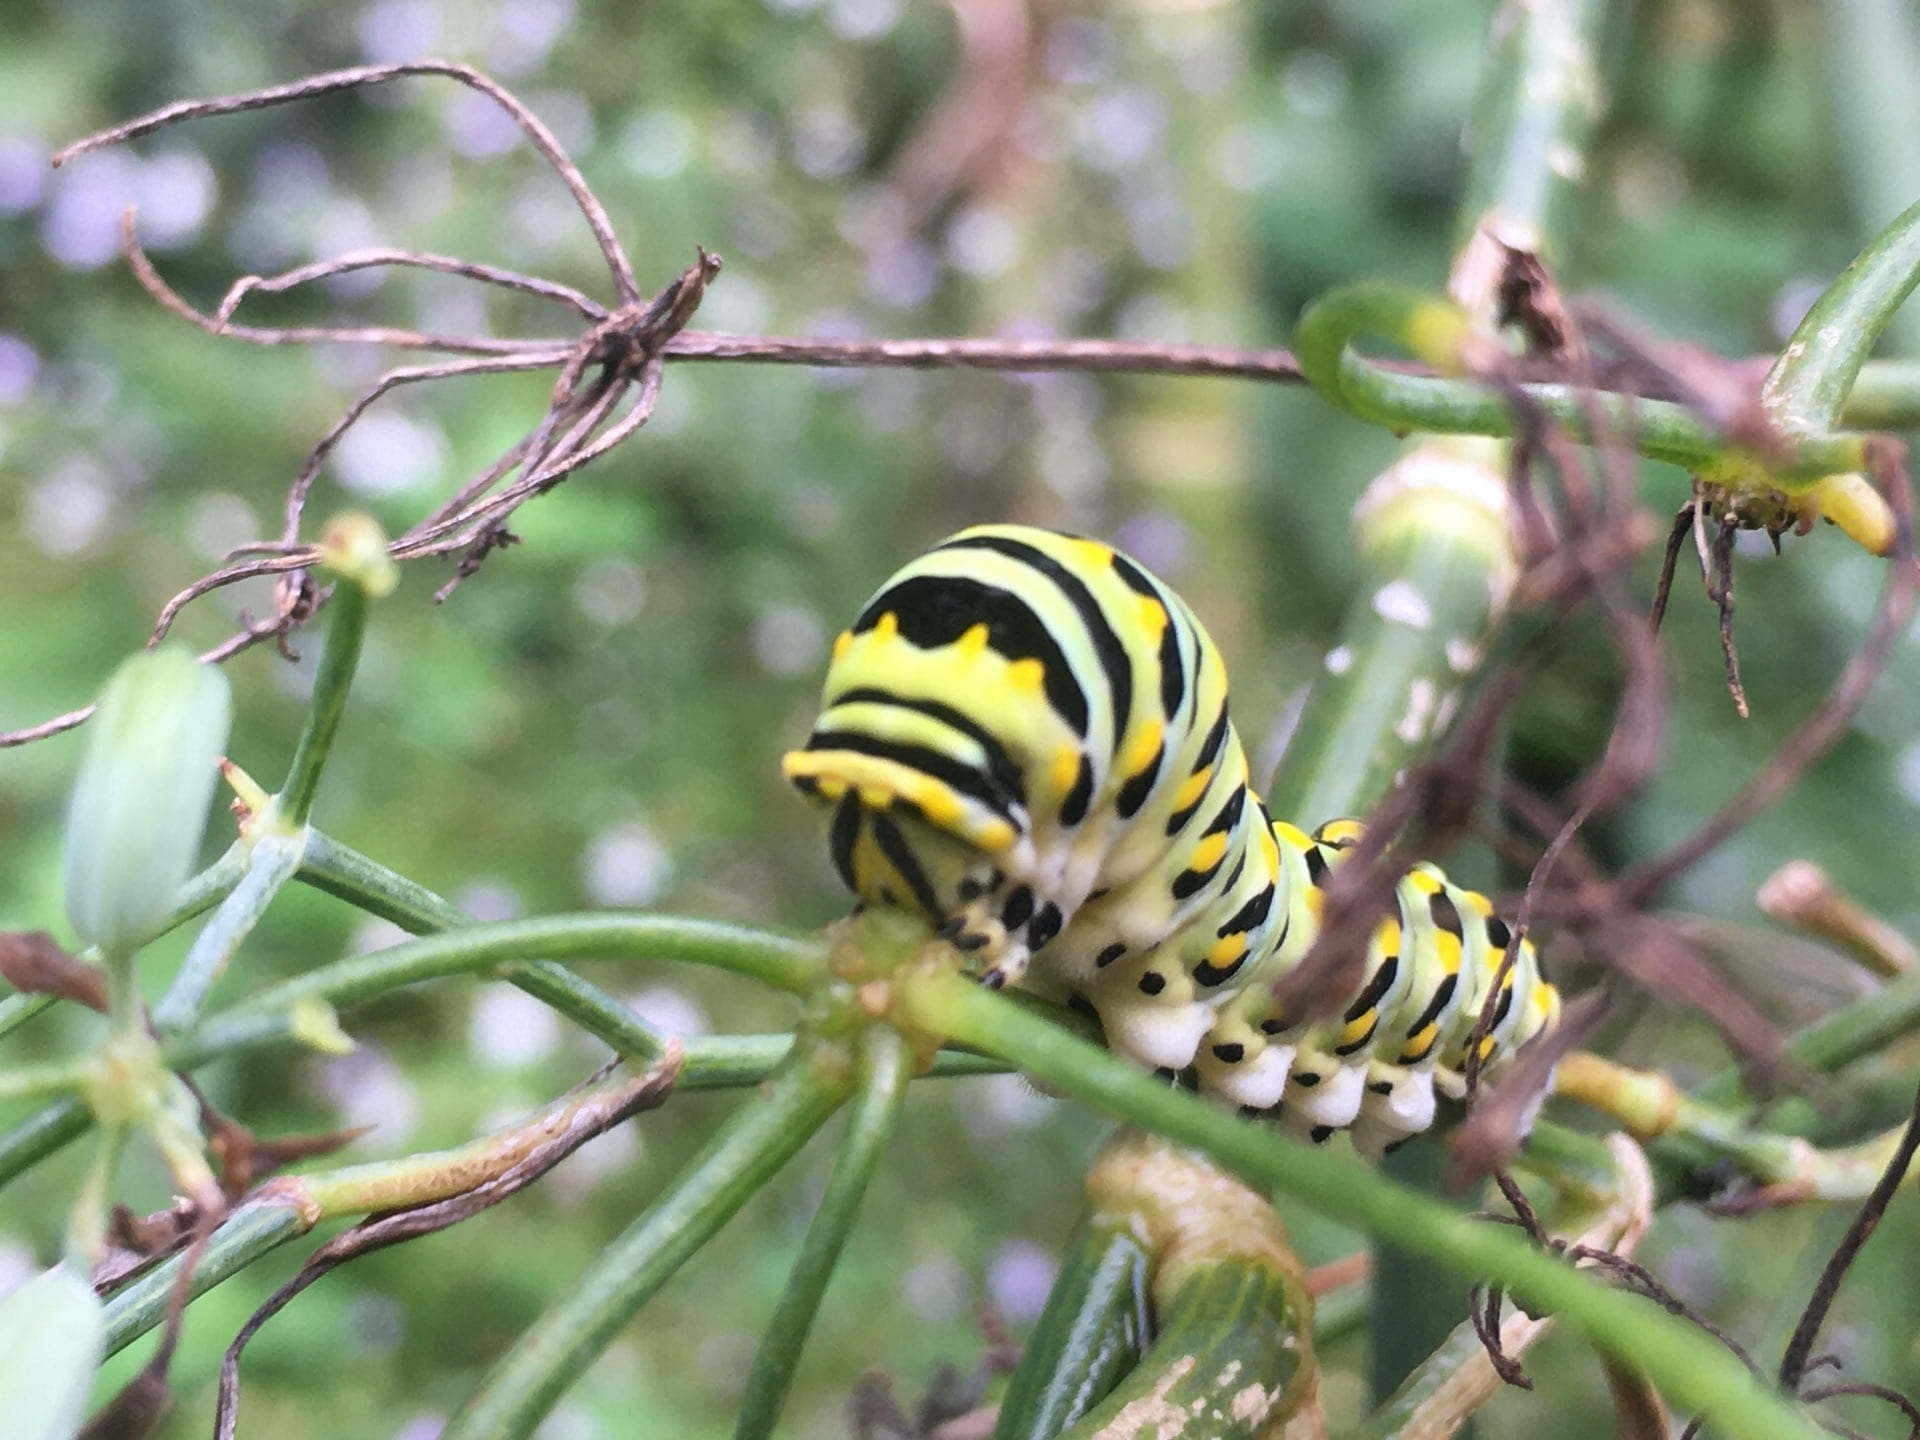 An eastern black swallowtail caterpillar munches on fennel stems.